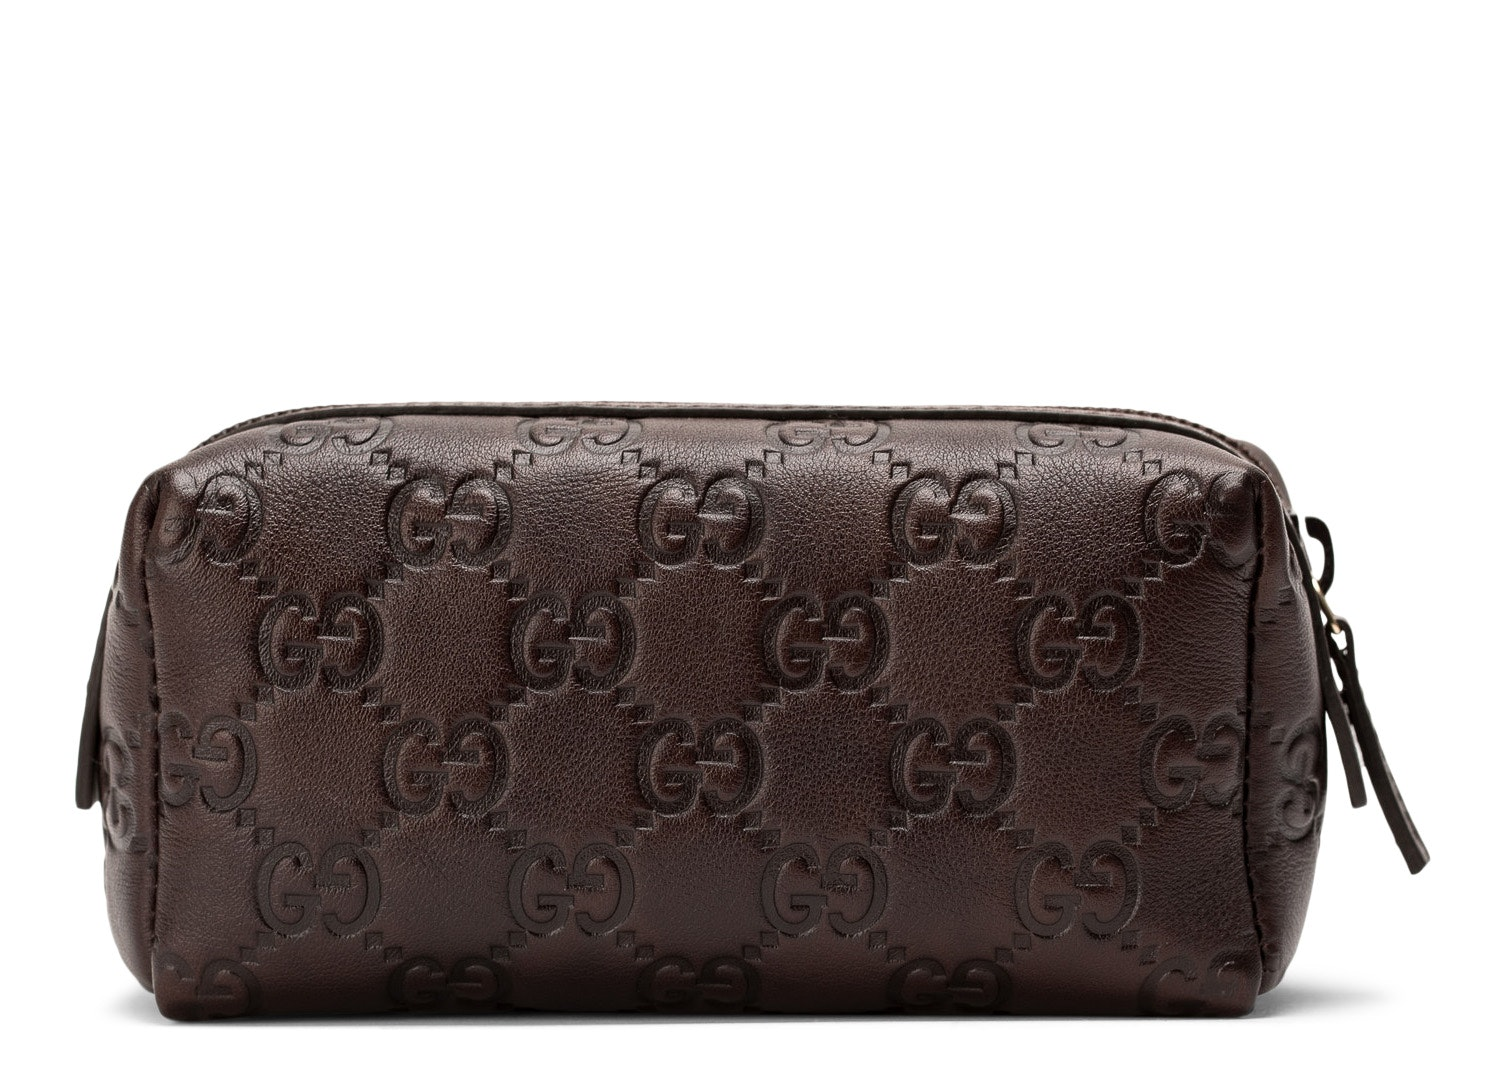 Gucci Toiletry Case Guccissima Small Brown